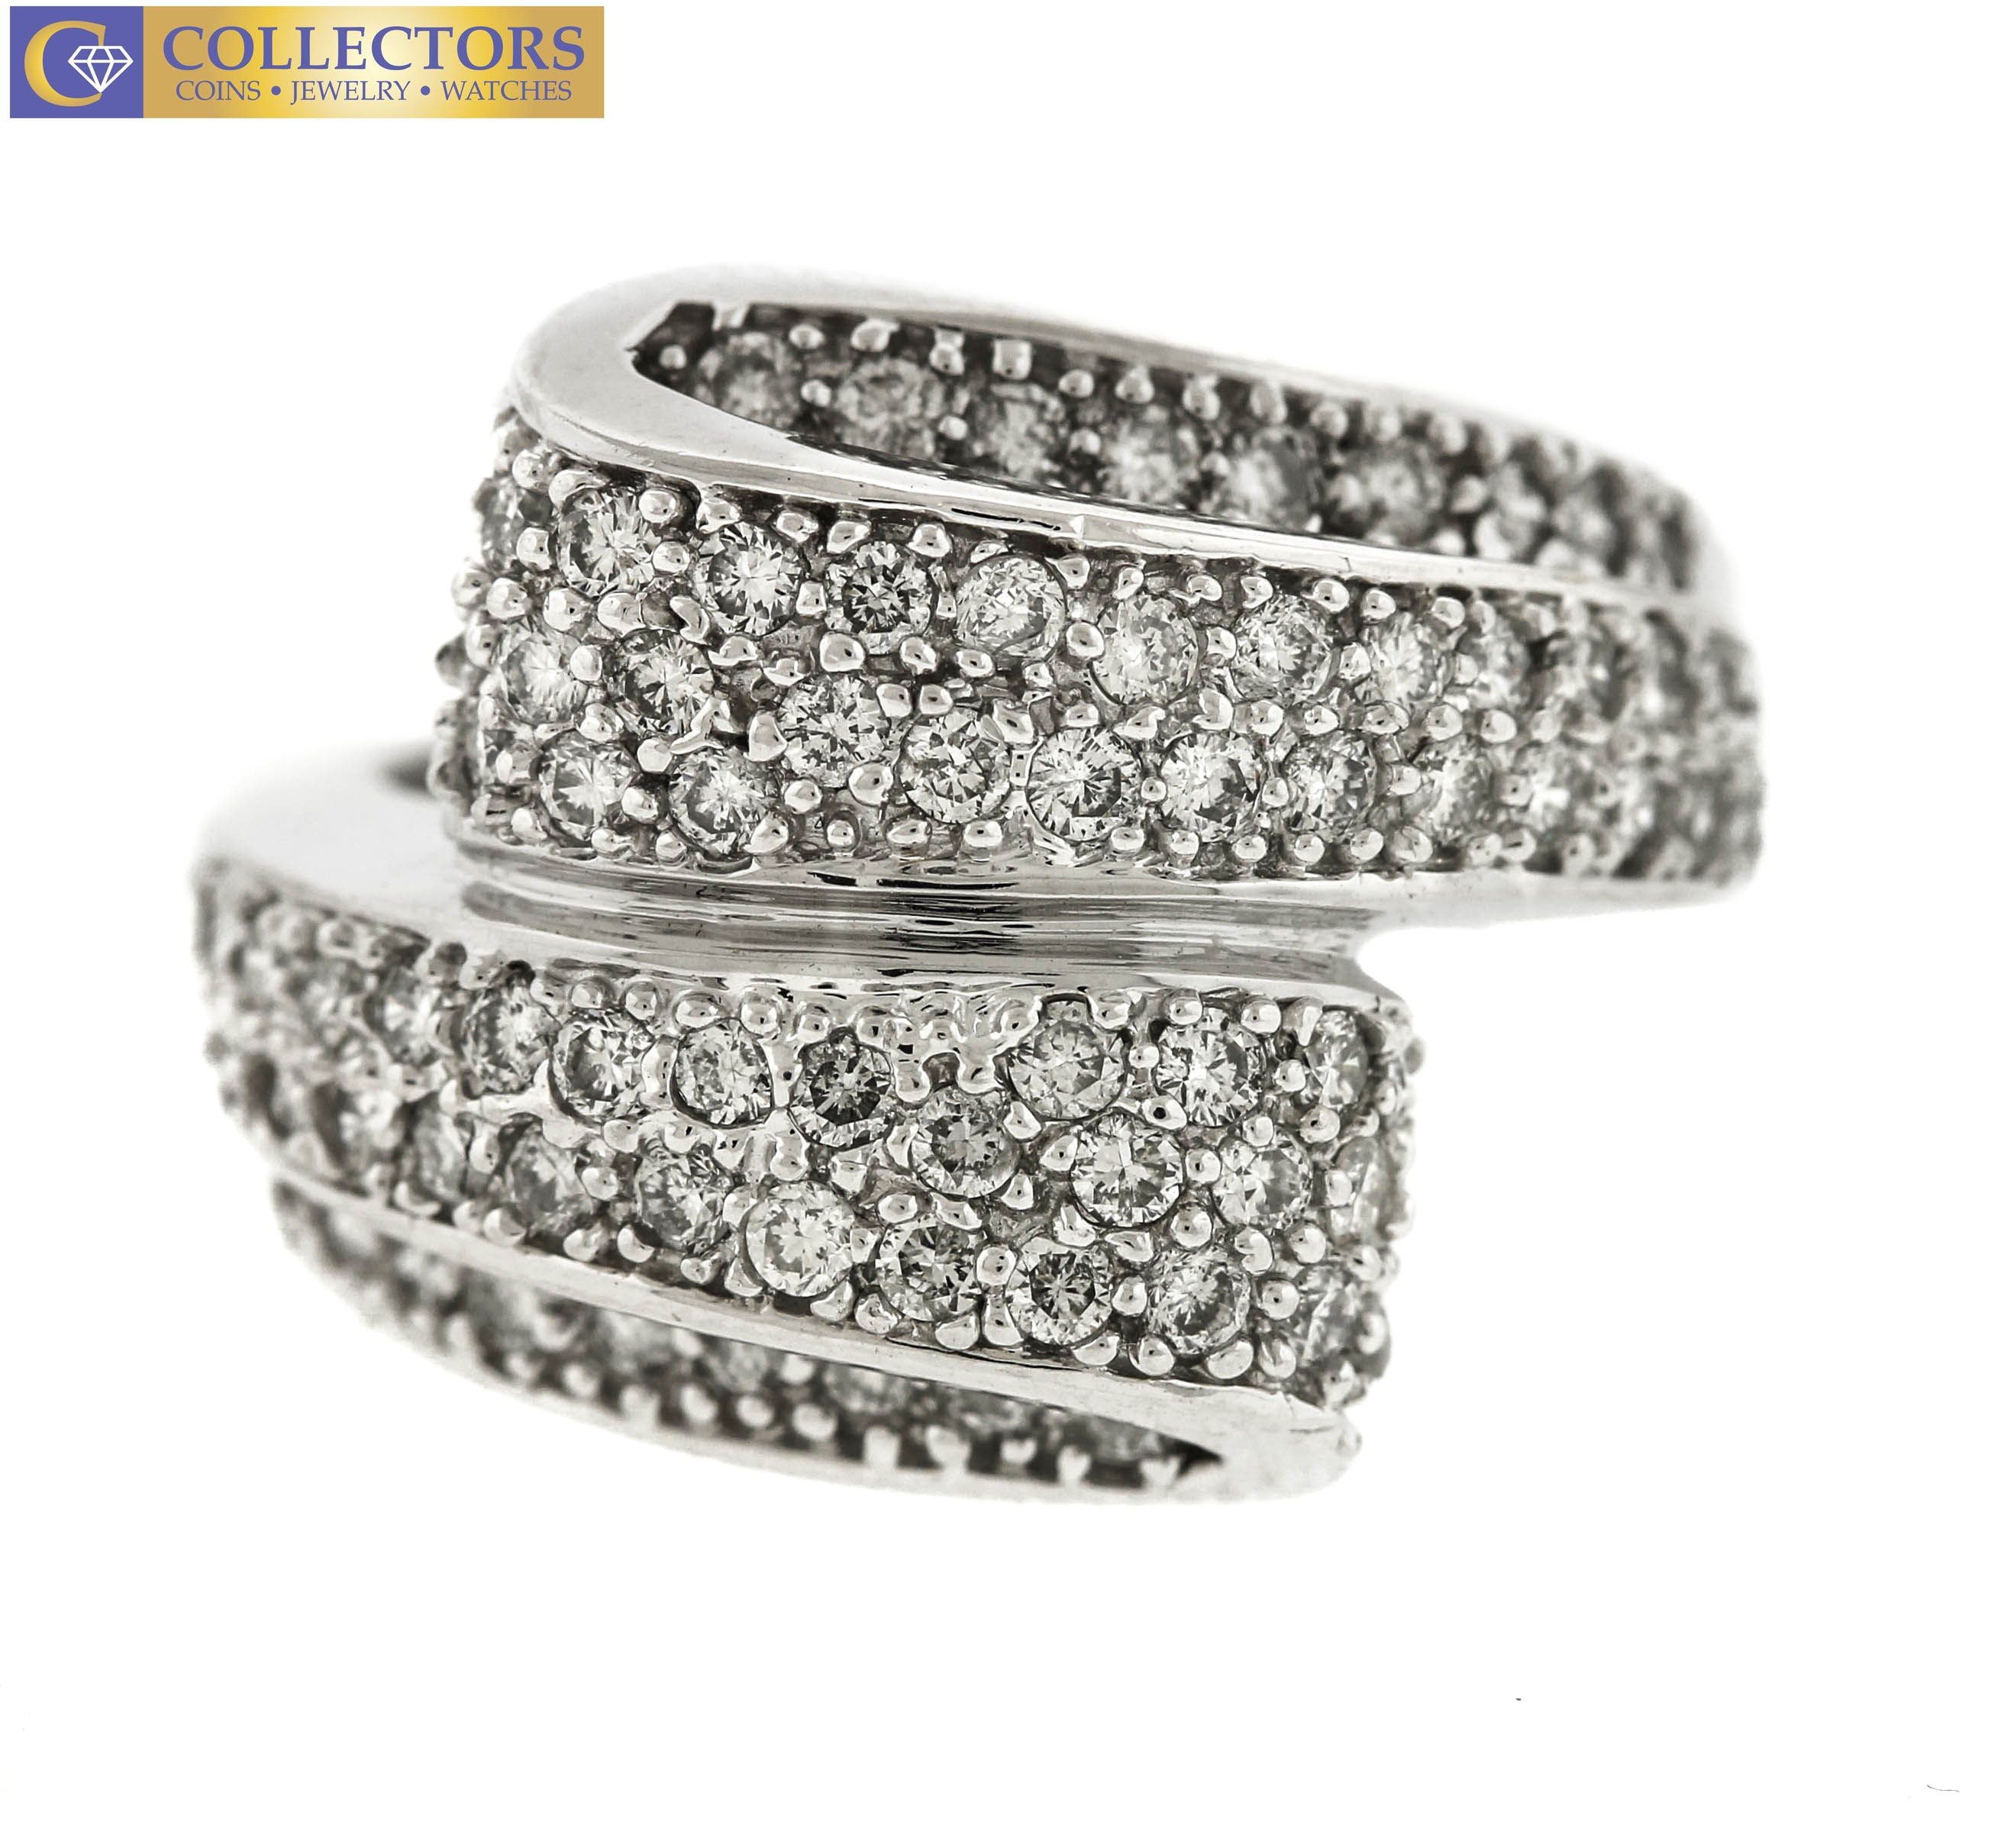 Lovely Ladies Estate 14K White Gold 2.50ctw Diamond Cluster Bypass Cocktail Ring